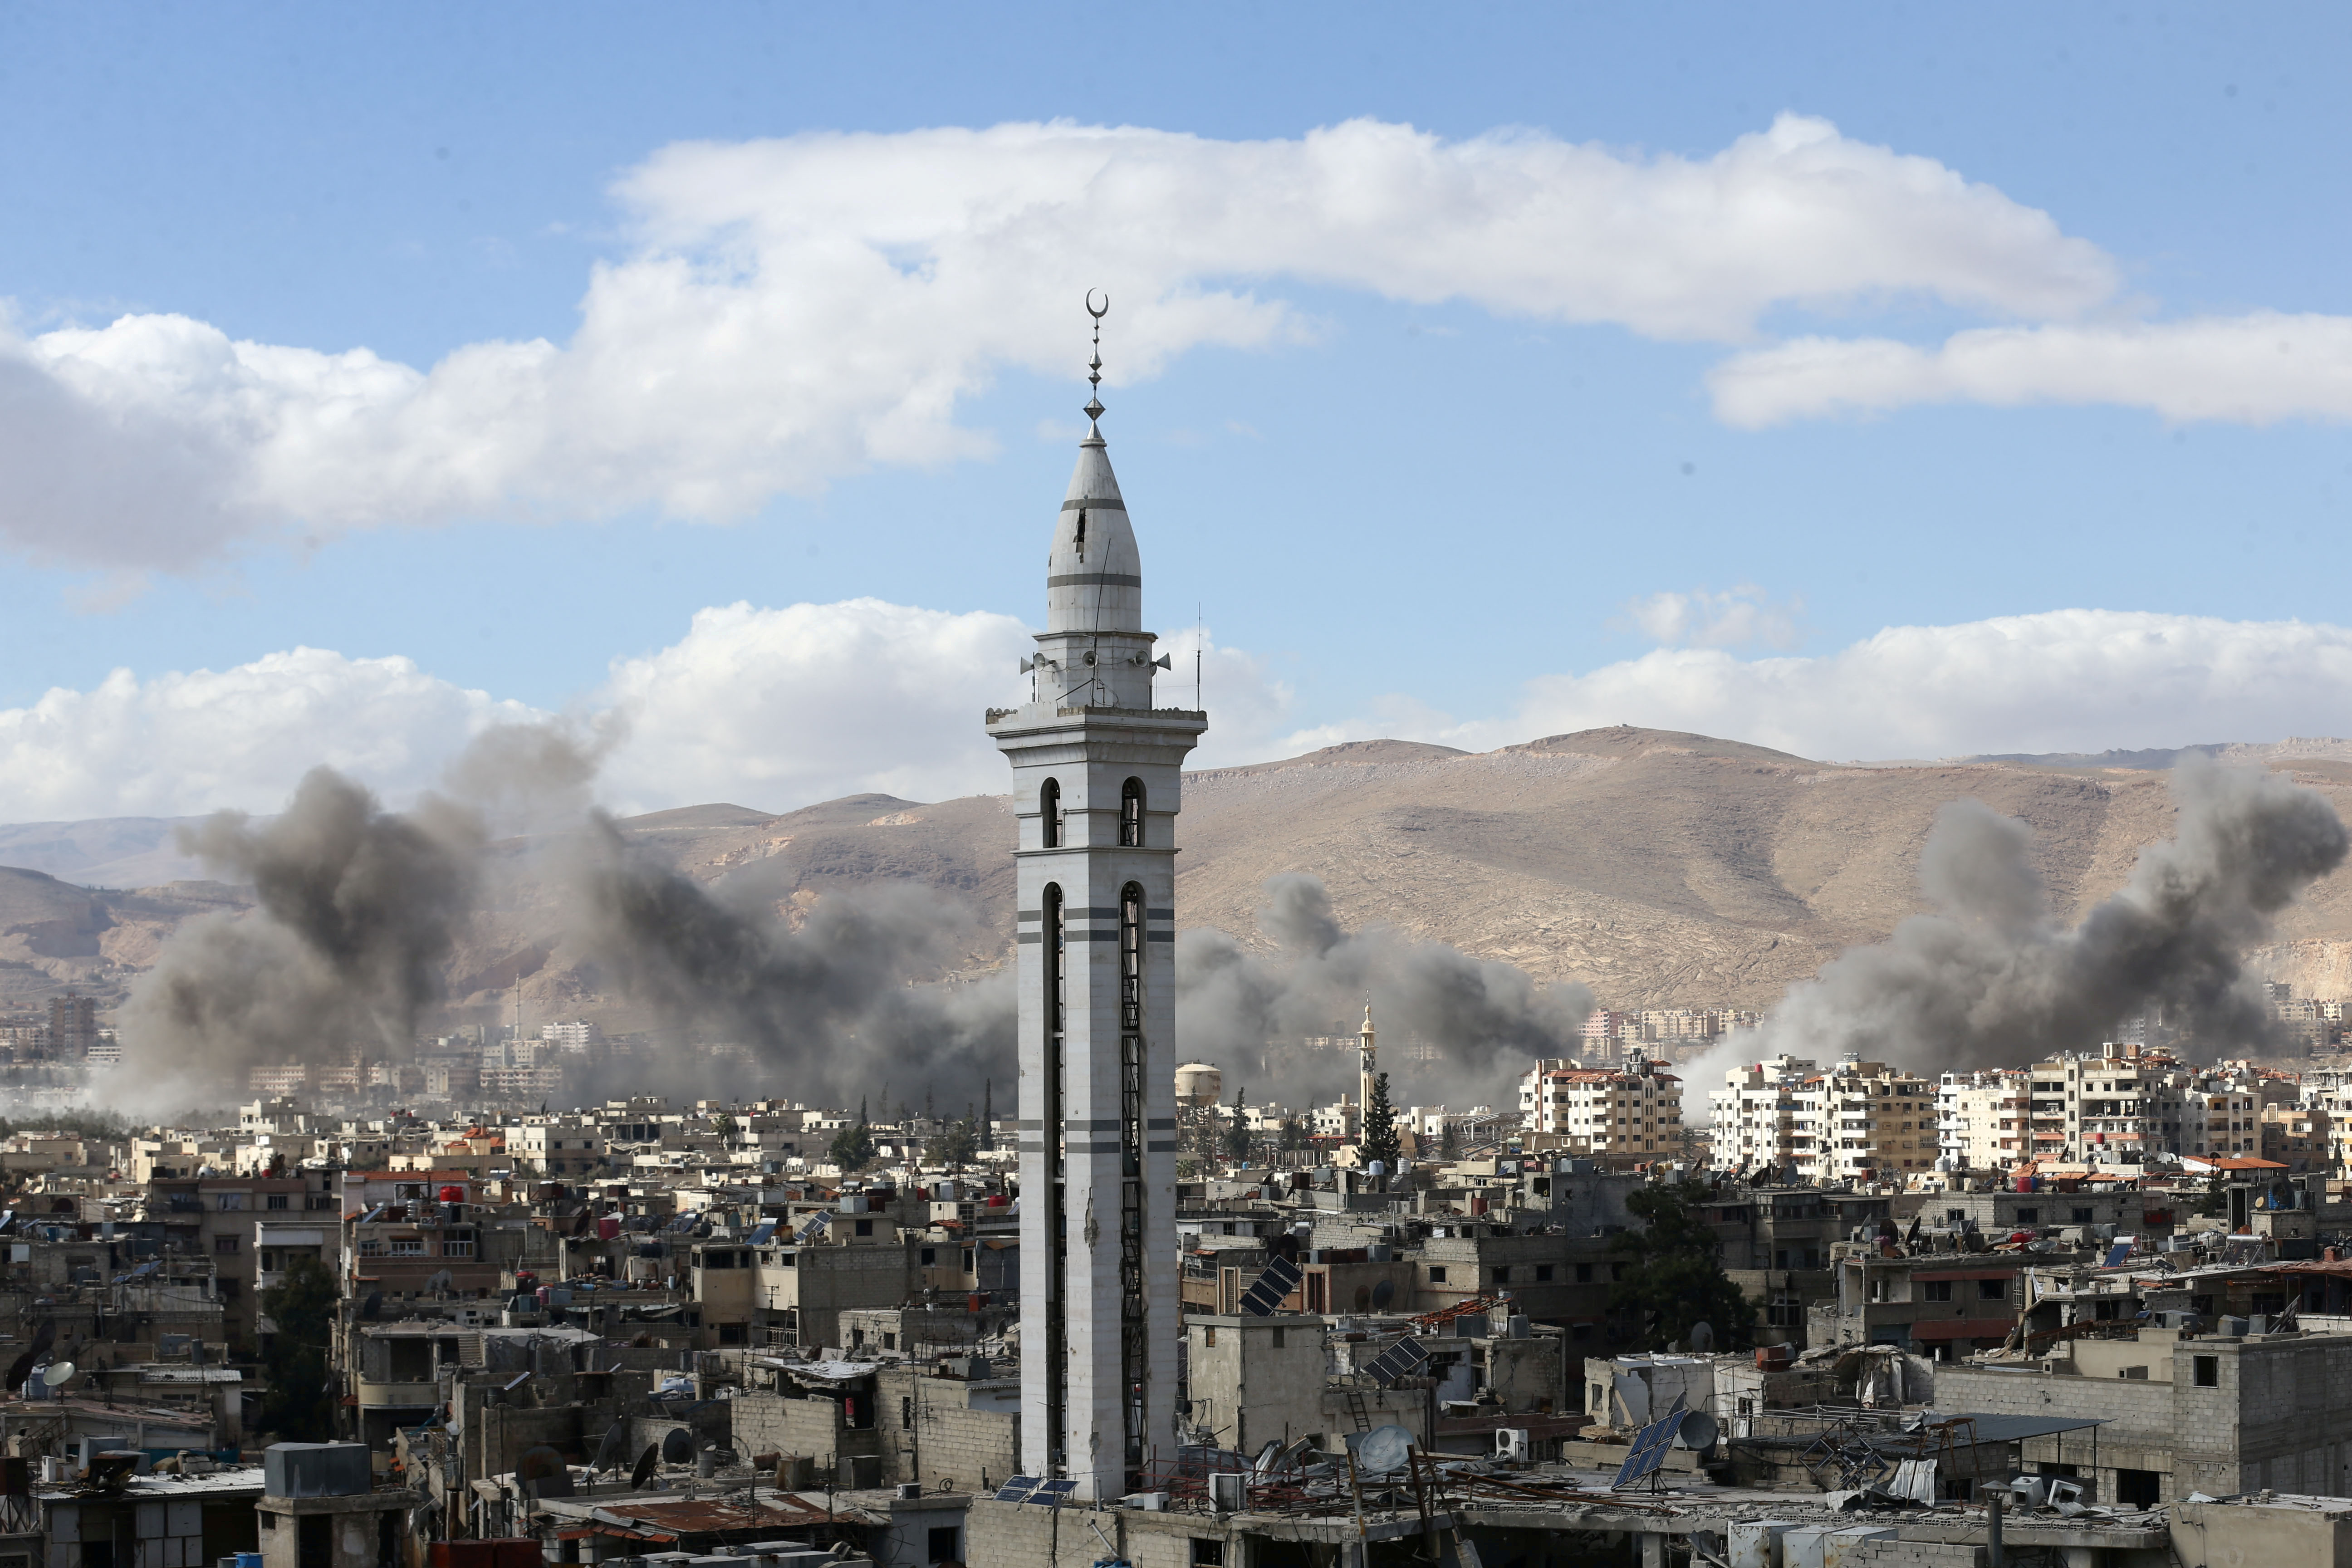 Smoke rises from the besieged Eastern Ghouta in Damascus, Syria, Feb. 27, 2018.